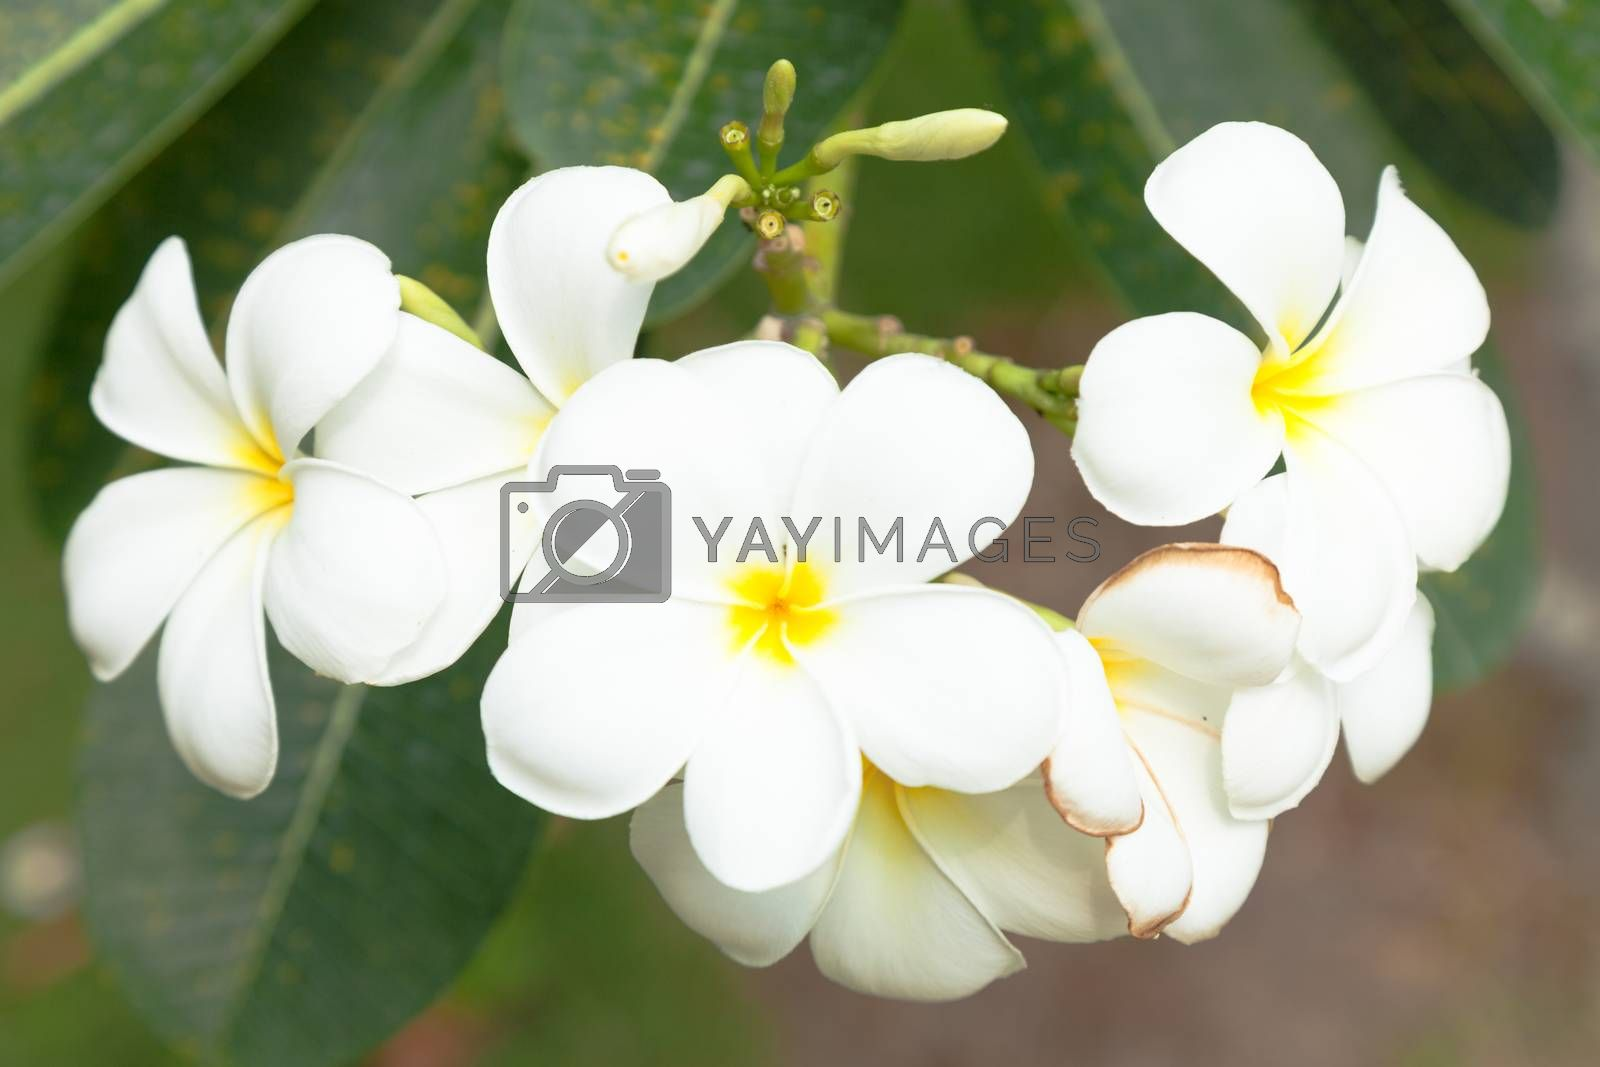 White flowers on a tree. A bouquet of white flowers in full bloom on the trees.